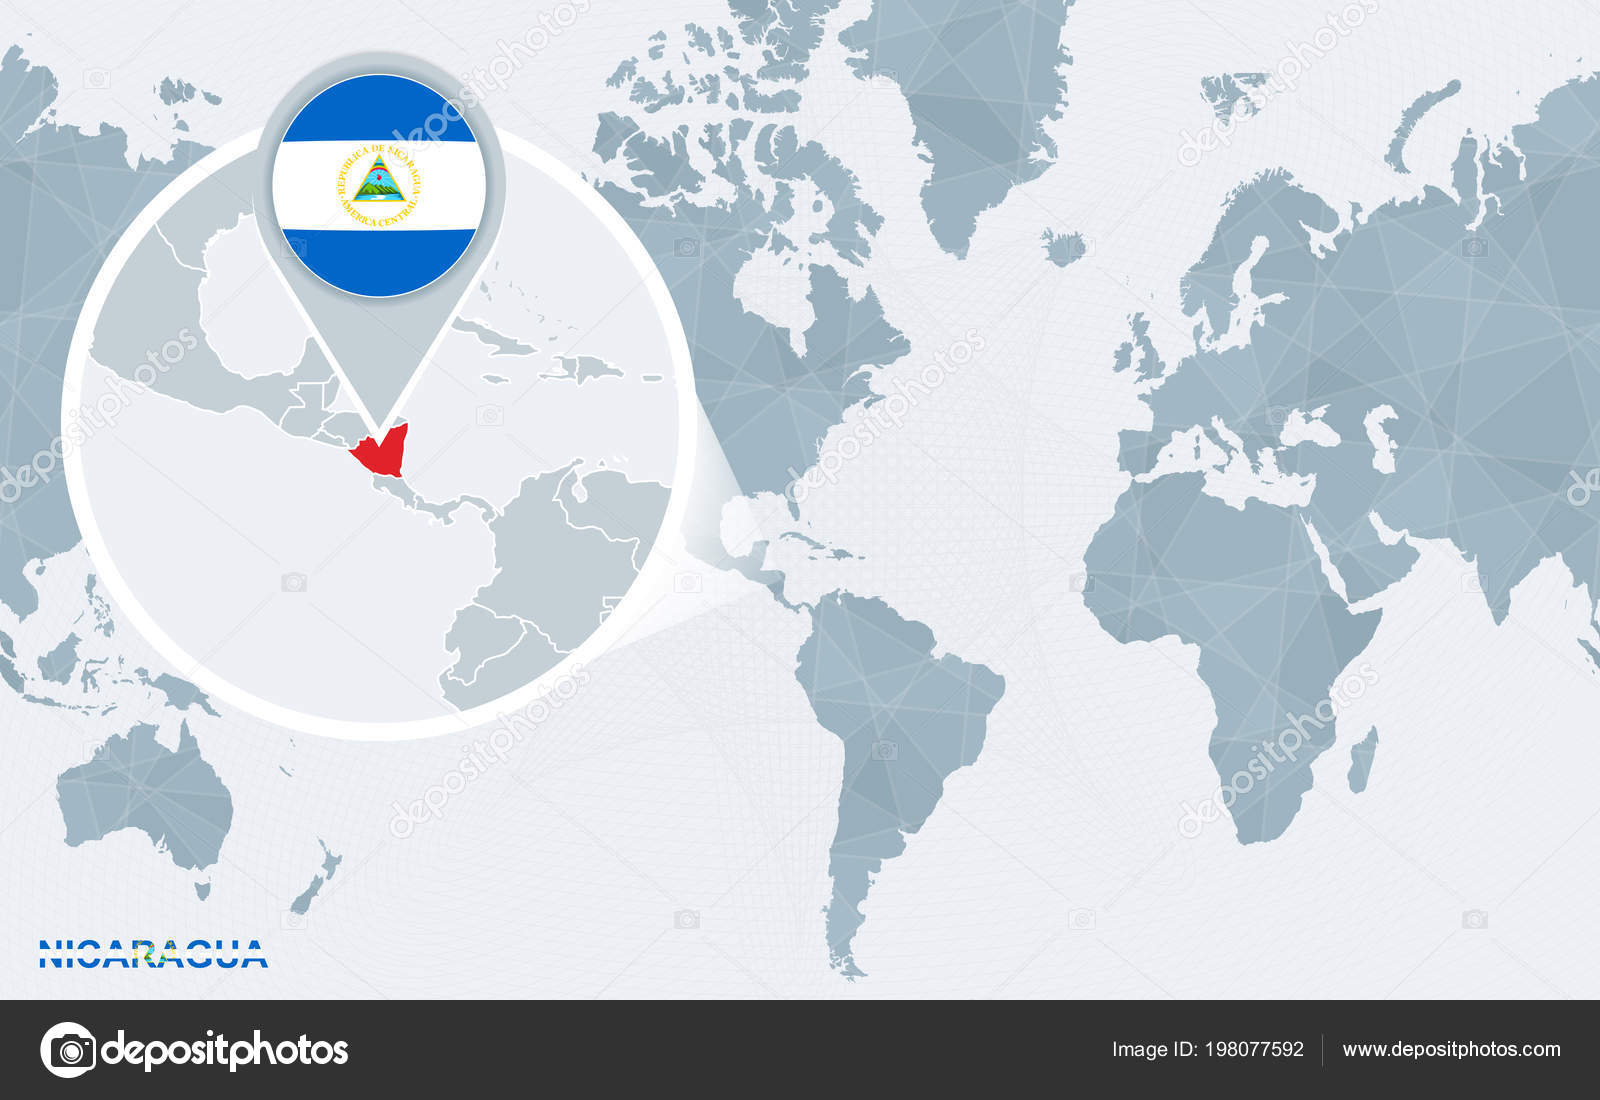 Nicaragua Location On World Map.World Map Centered America Magnified Nicaragua Blue Flag Map